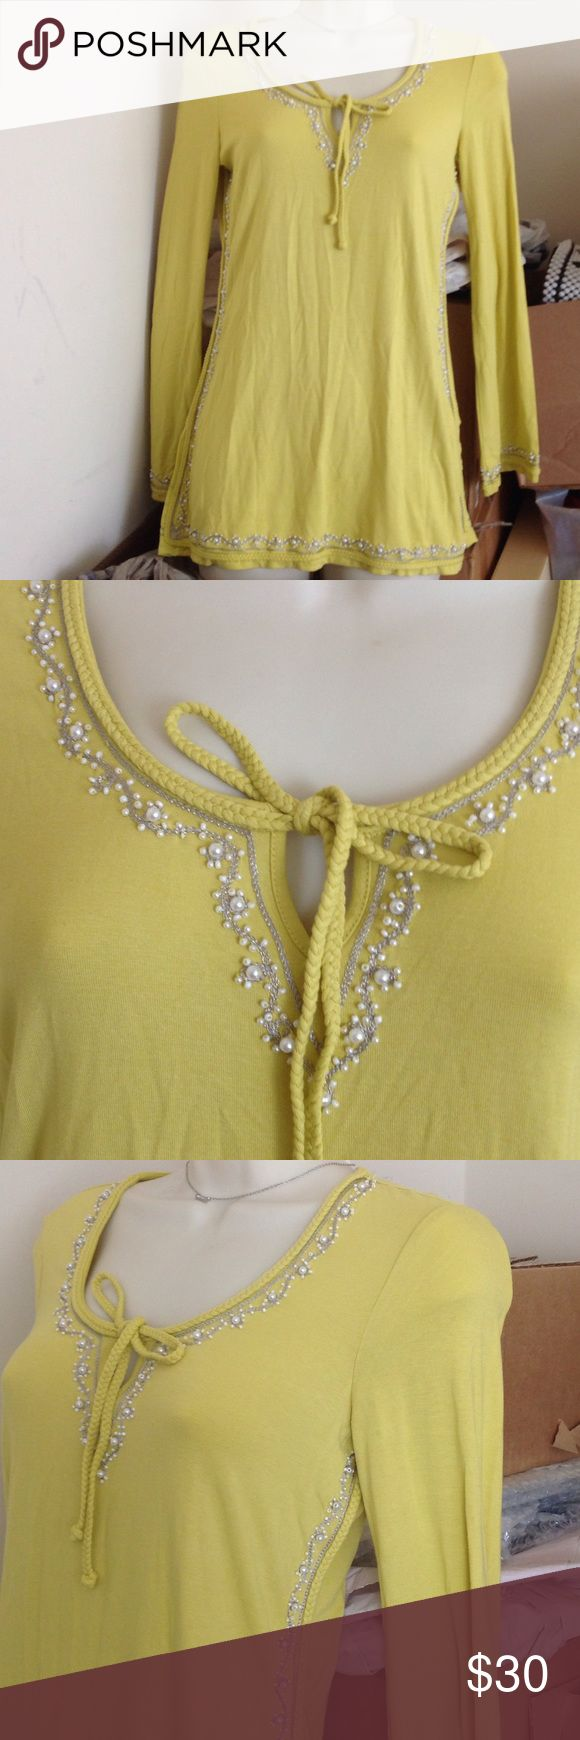 INC yellow long sleeve top tunic Beautiful yellow long sleeve tunic top with pearl and beads decoration on sleeve, down the sides and around neck.  Petition size from Macy's I.N.C. Brand.  Brand new never used.  A bit wrinkled from being stored. INC International Concepts Tops Tunics